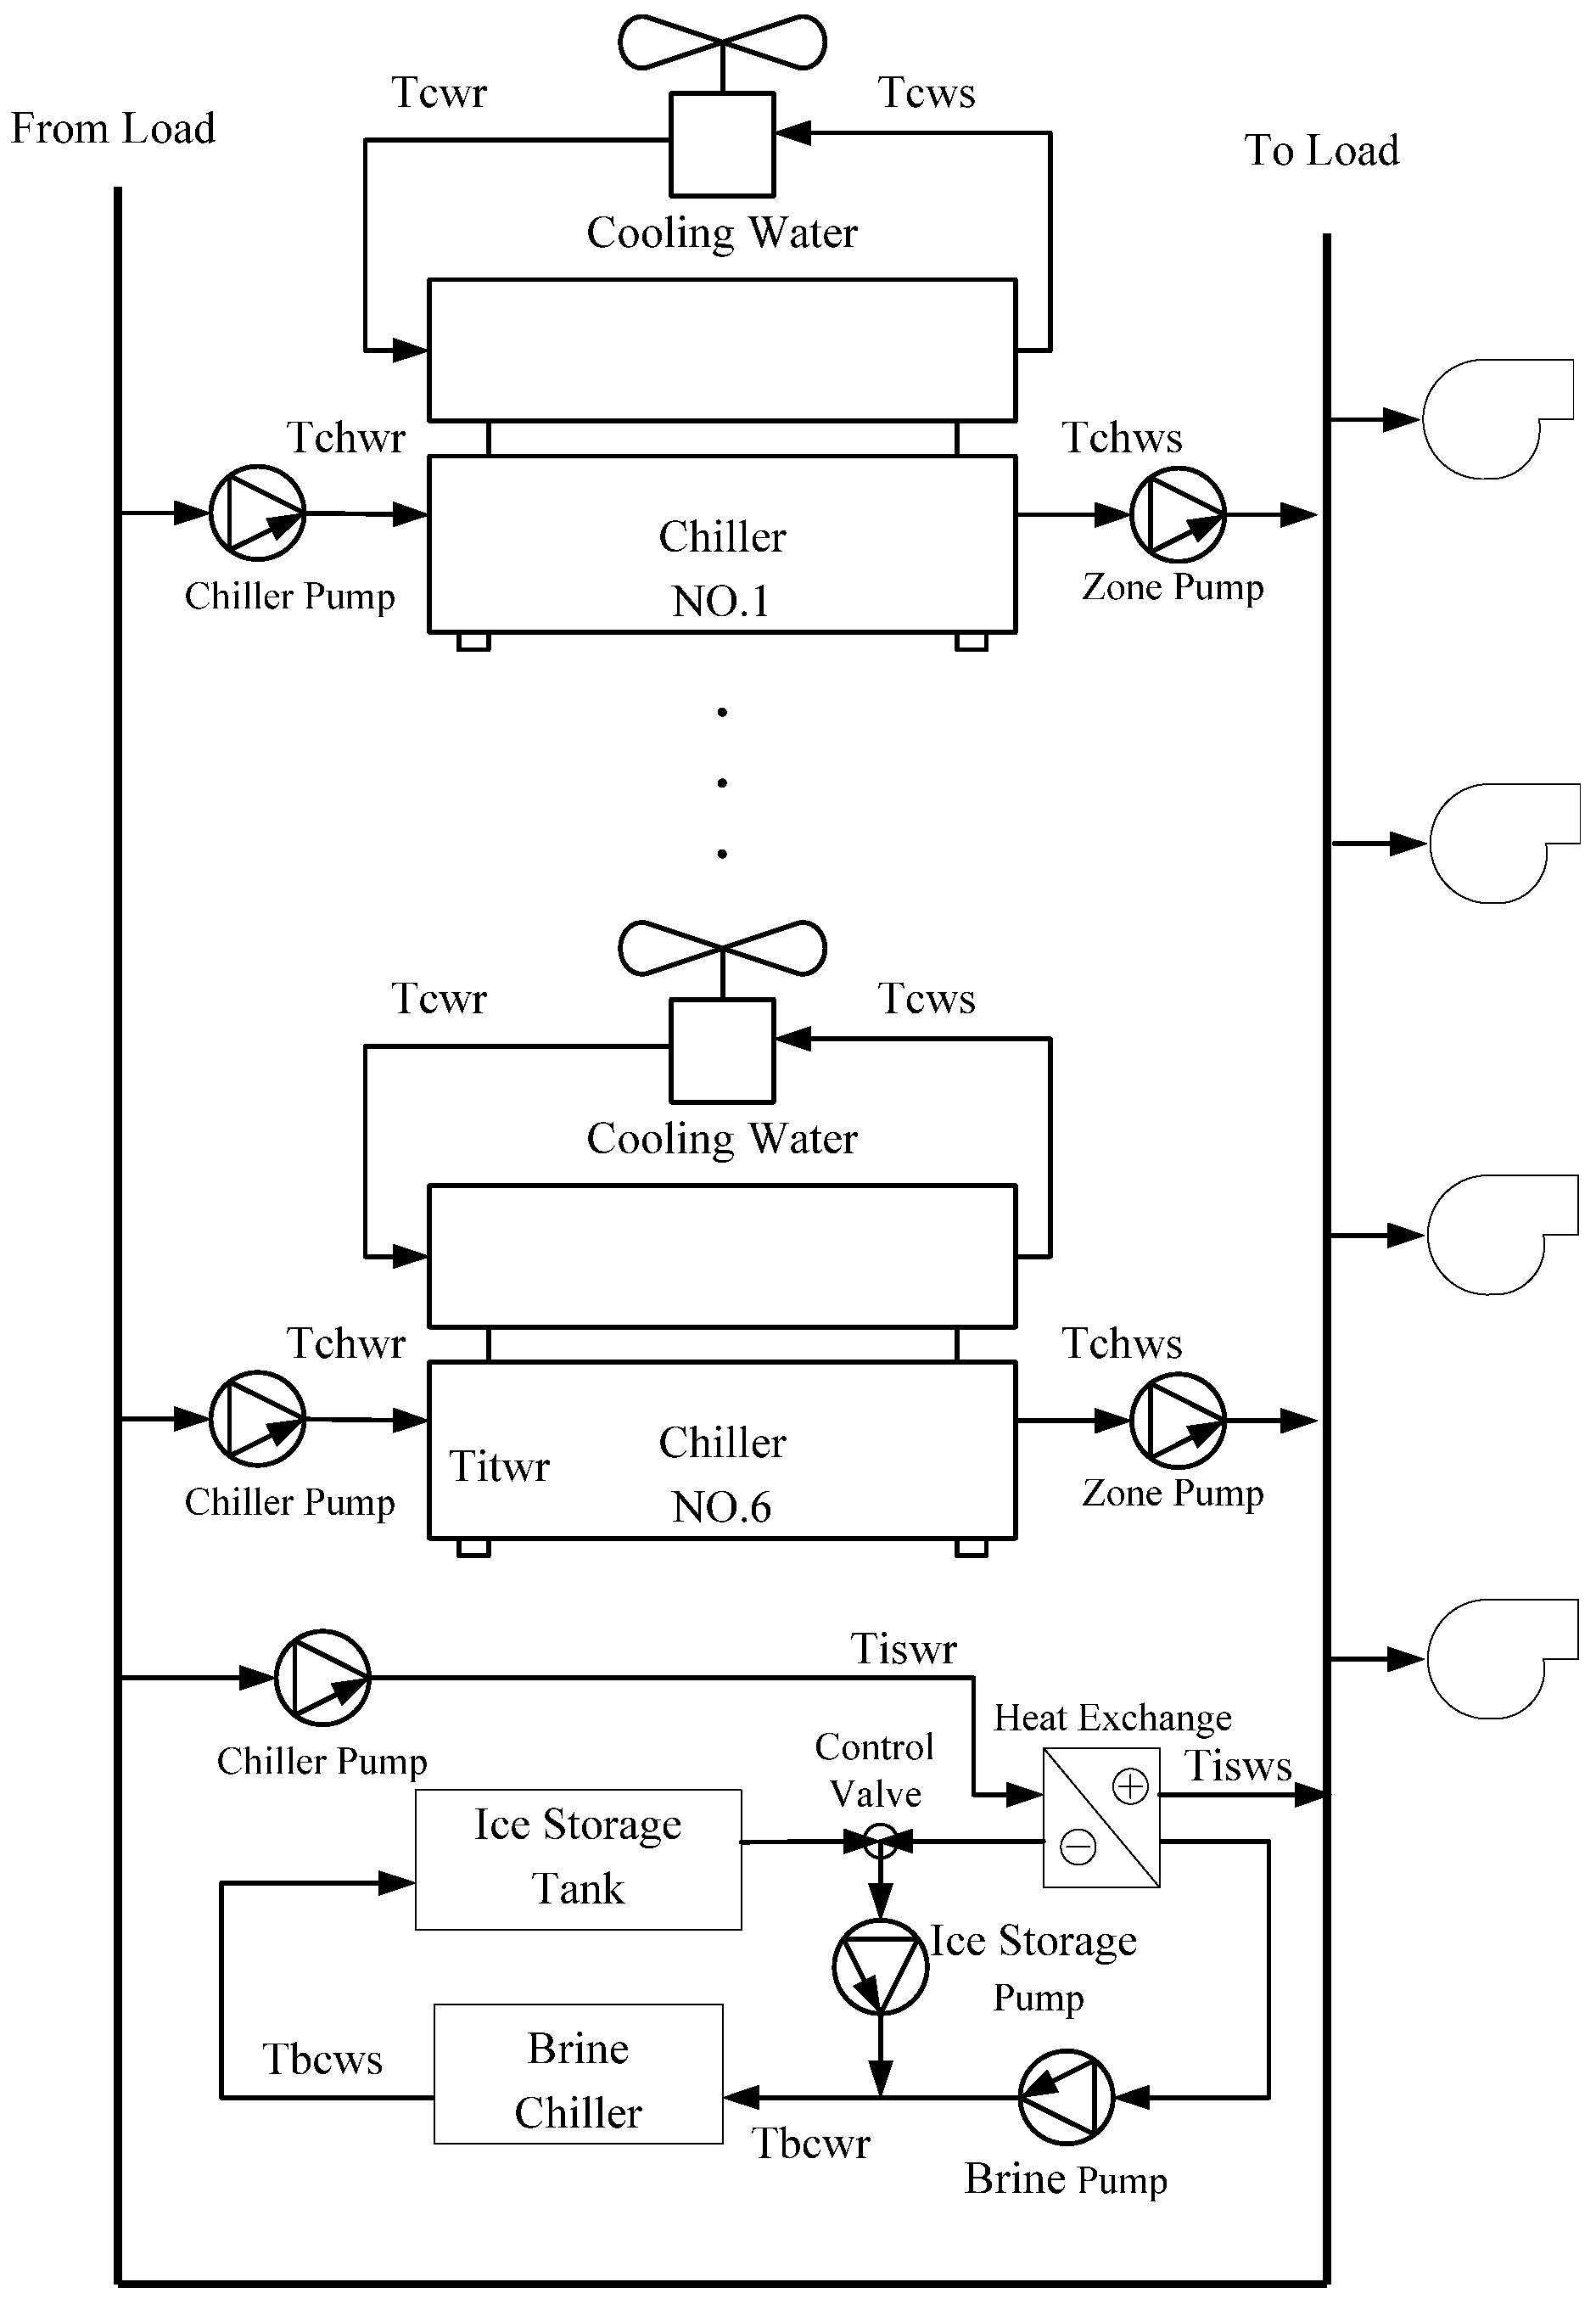 hight resolution of chilled water air conditioning auto electrical wiring diagram 4x55w audio circuit diagram using tda7560